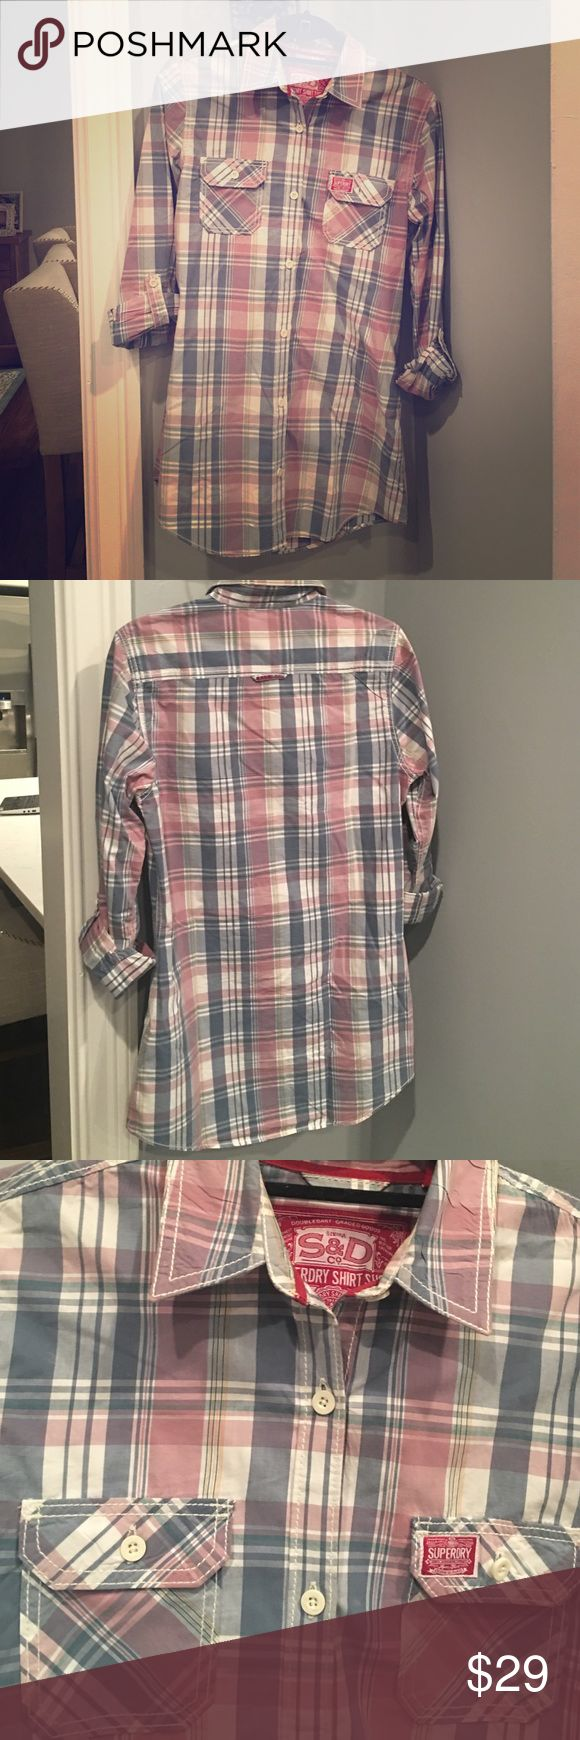 Superdry shirt shop Gorgeous flannel shirt! Like new condition!  ❌no trades no holds❌ Superdry Tops Button Down Shirts